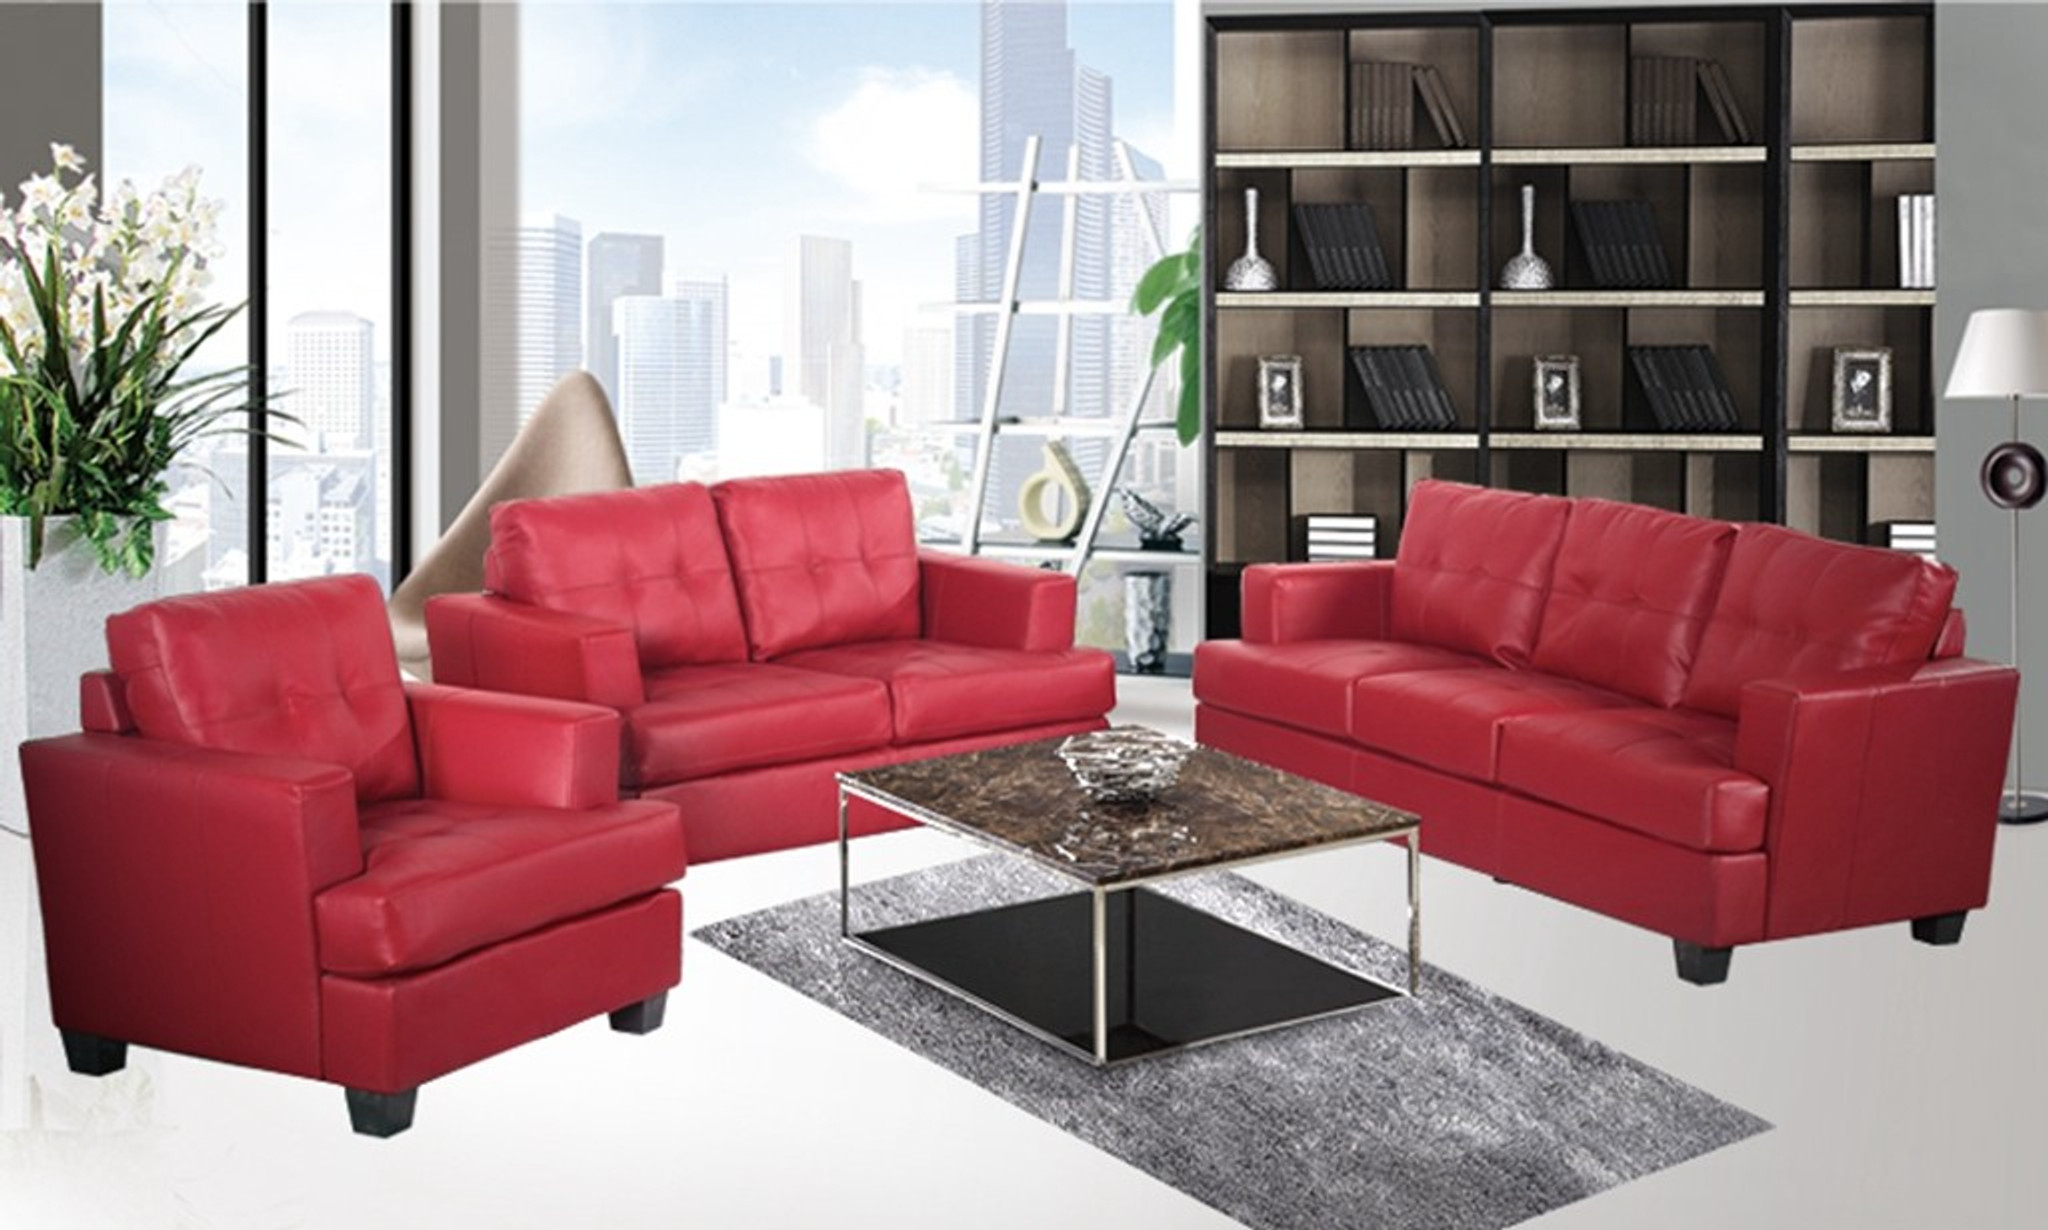 NICHOLAS RED SOFA LOVESEAT WITH CHAIR 3 PCS Set